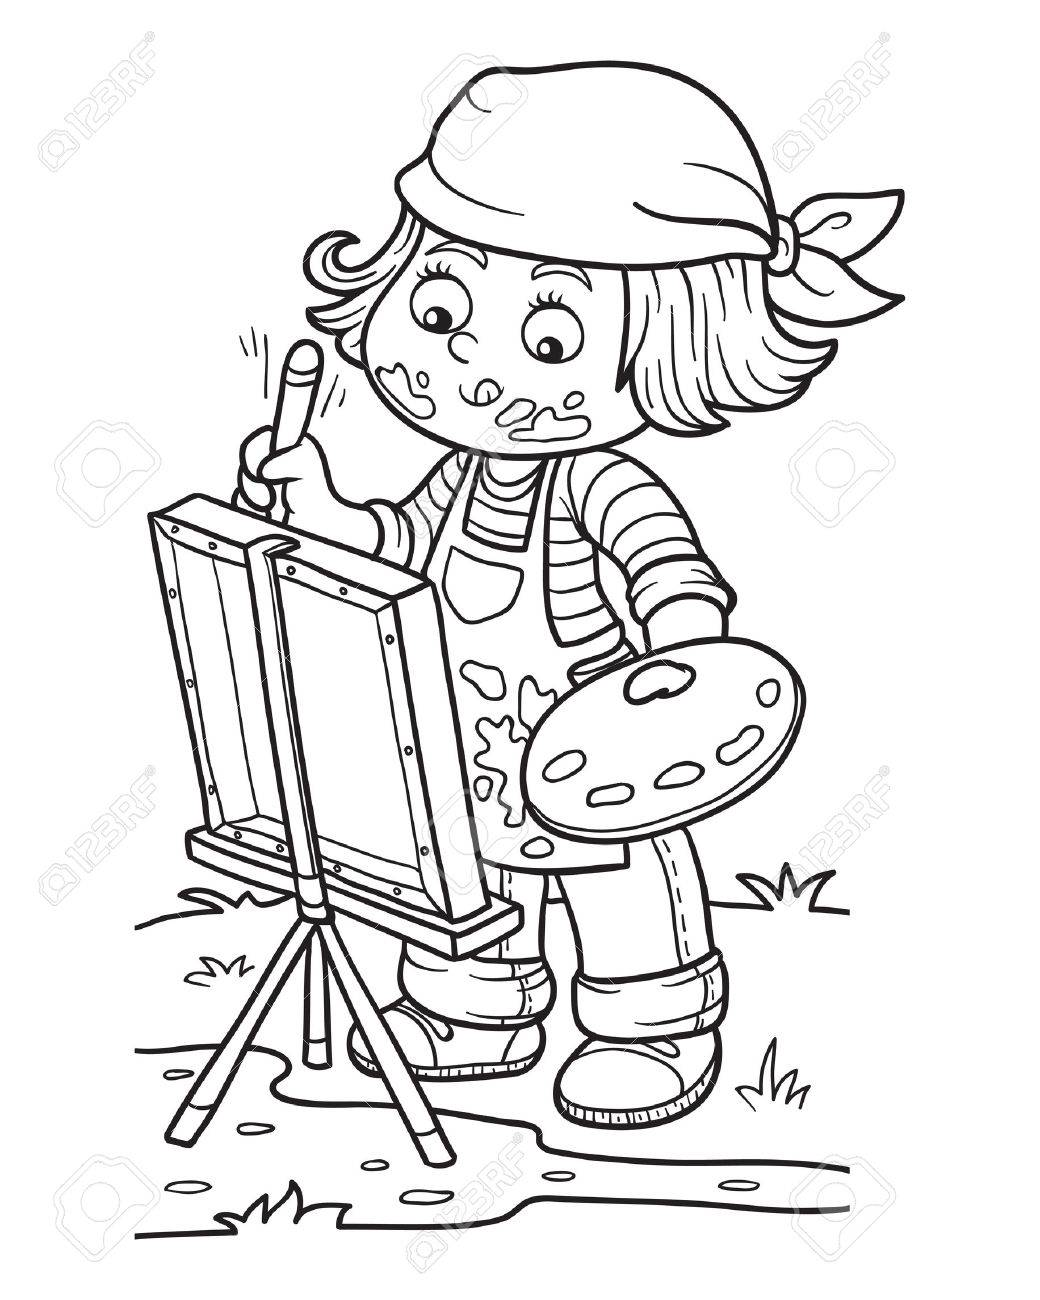 Coloring book for girl - Coloring Book For Children Girl Artist Draws On Nature Open Air Stock Vector